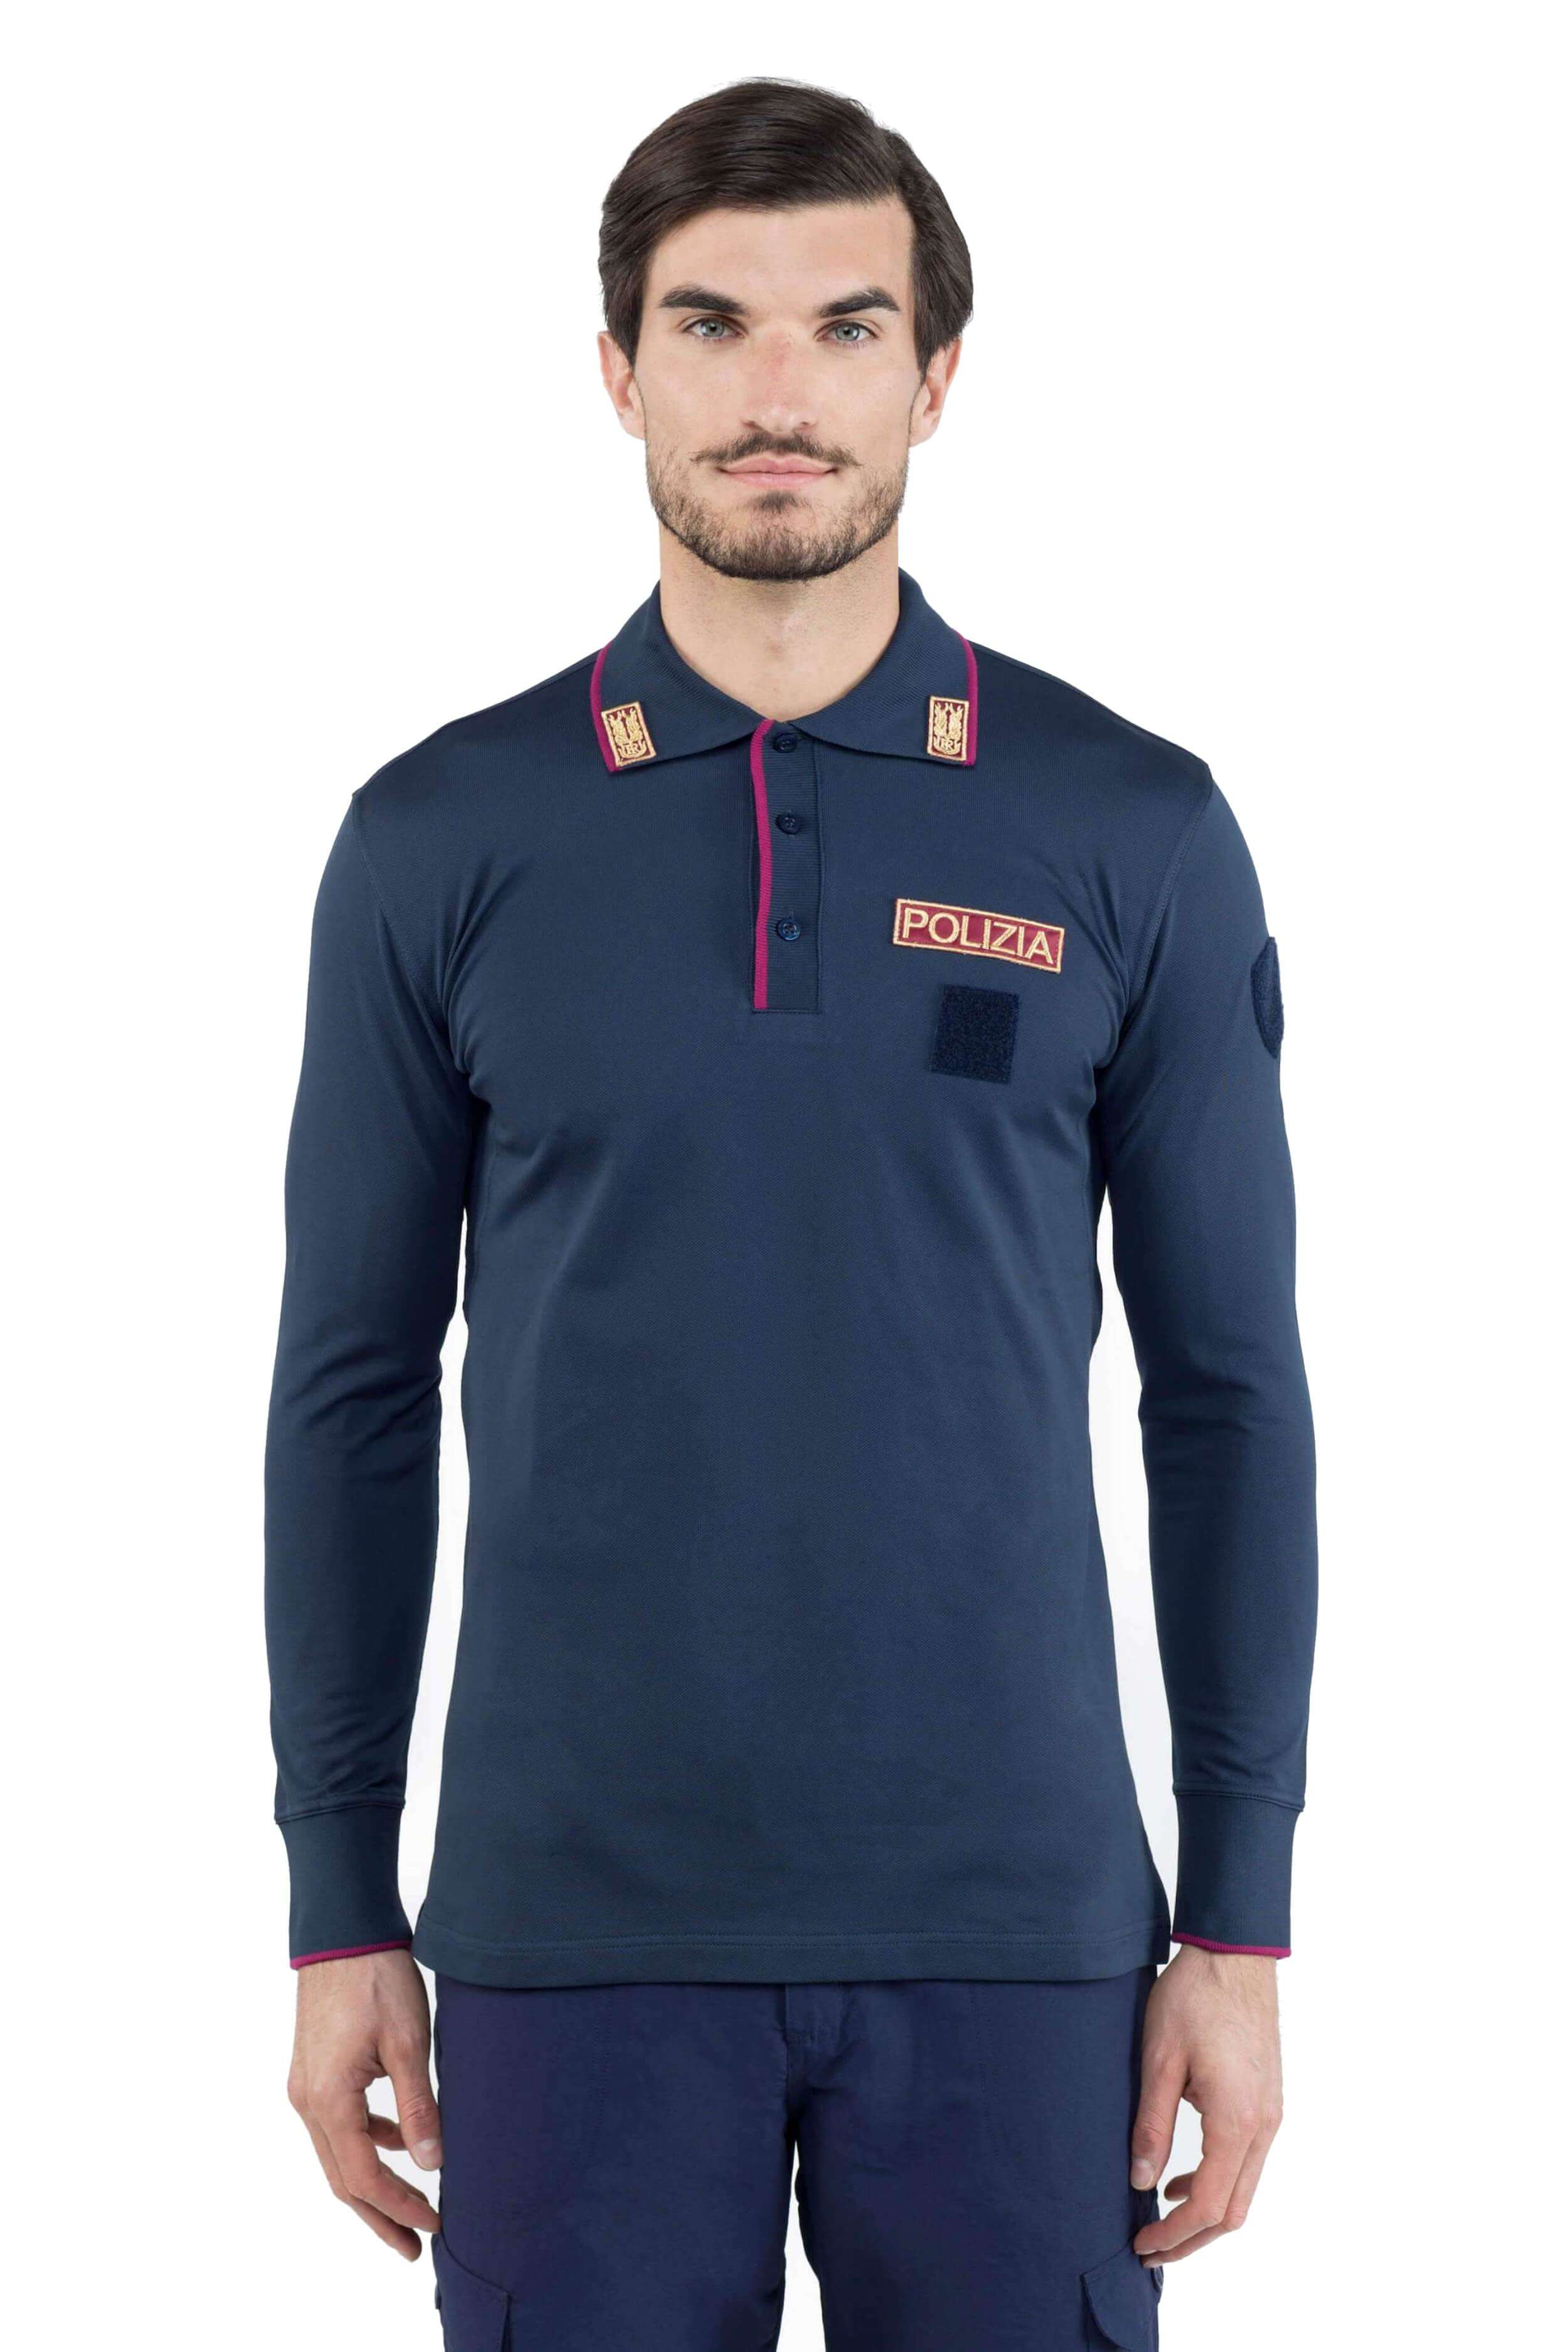 POLICE LONG SLEEVE POLO